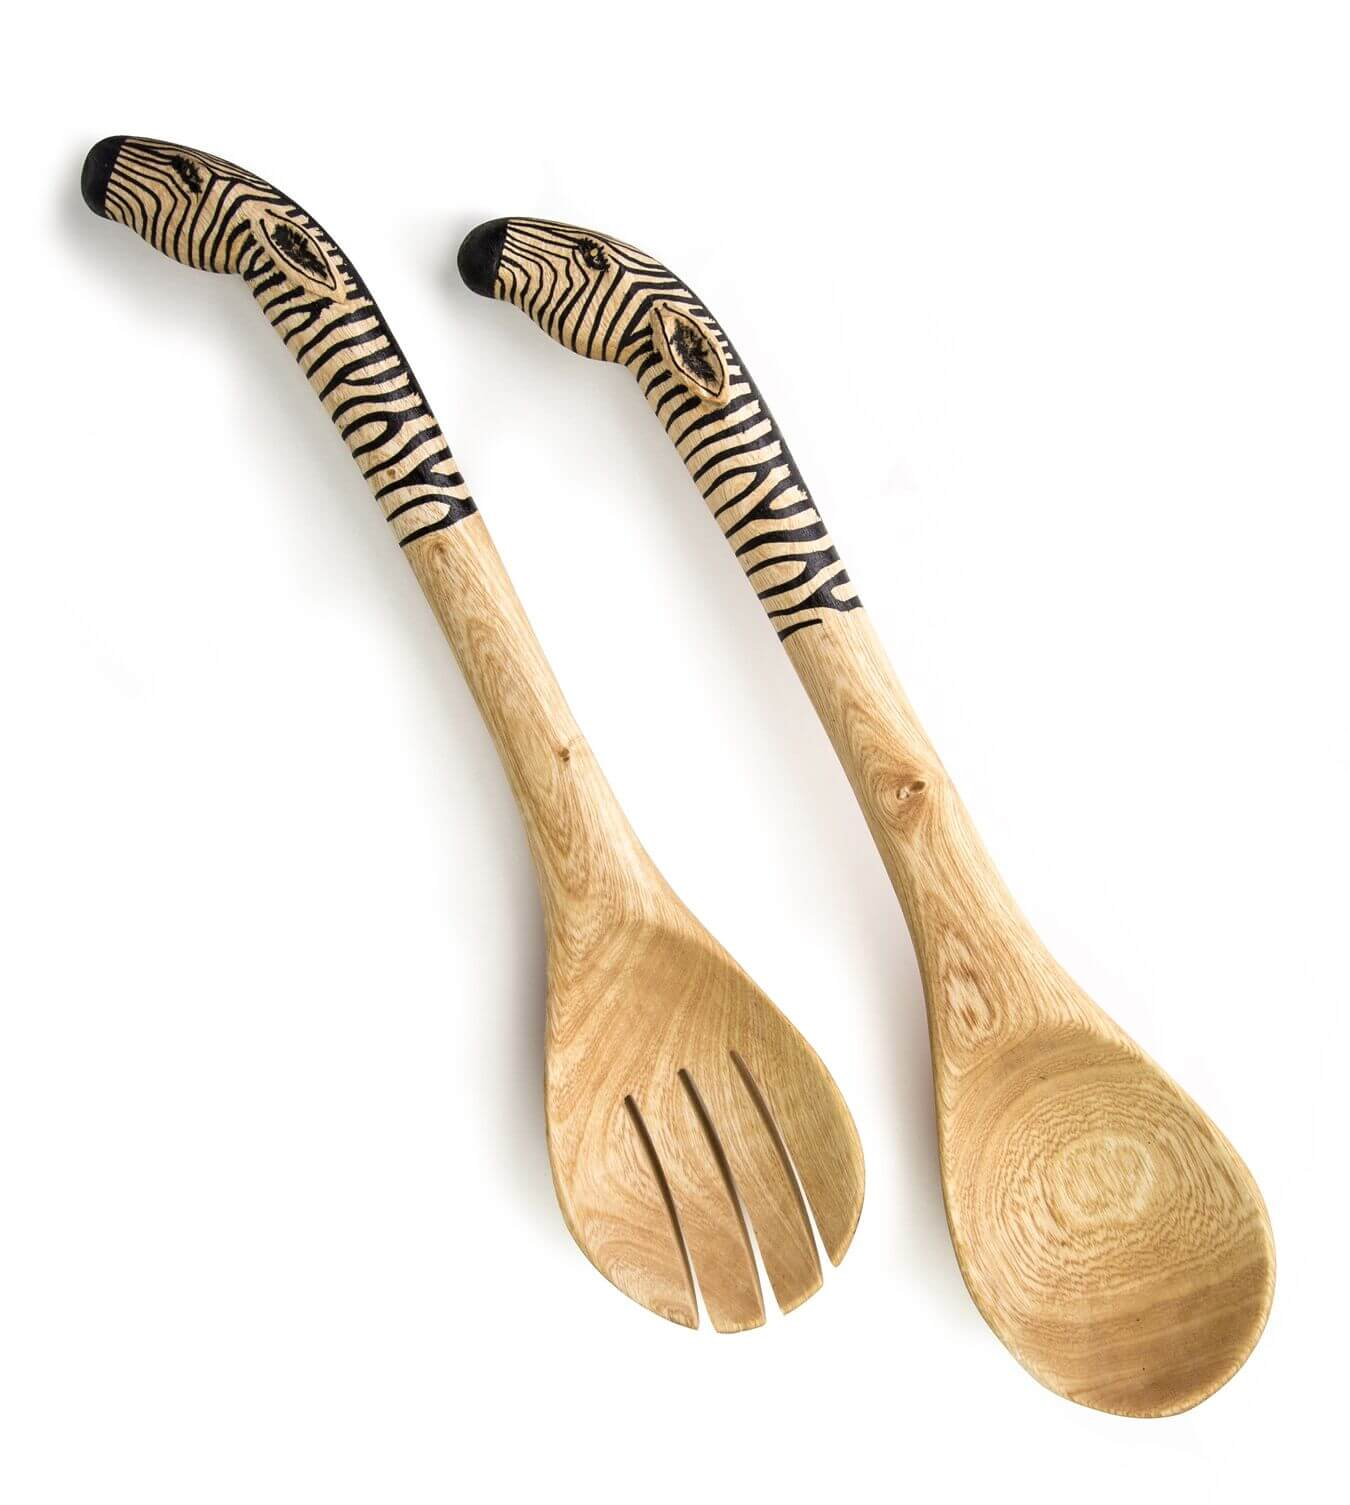 Acacia Creations Zebra Salad Servers Jungle Pillows